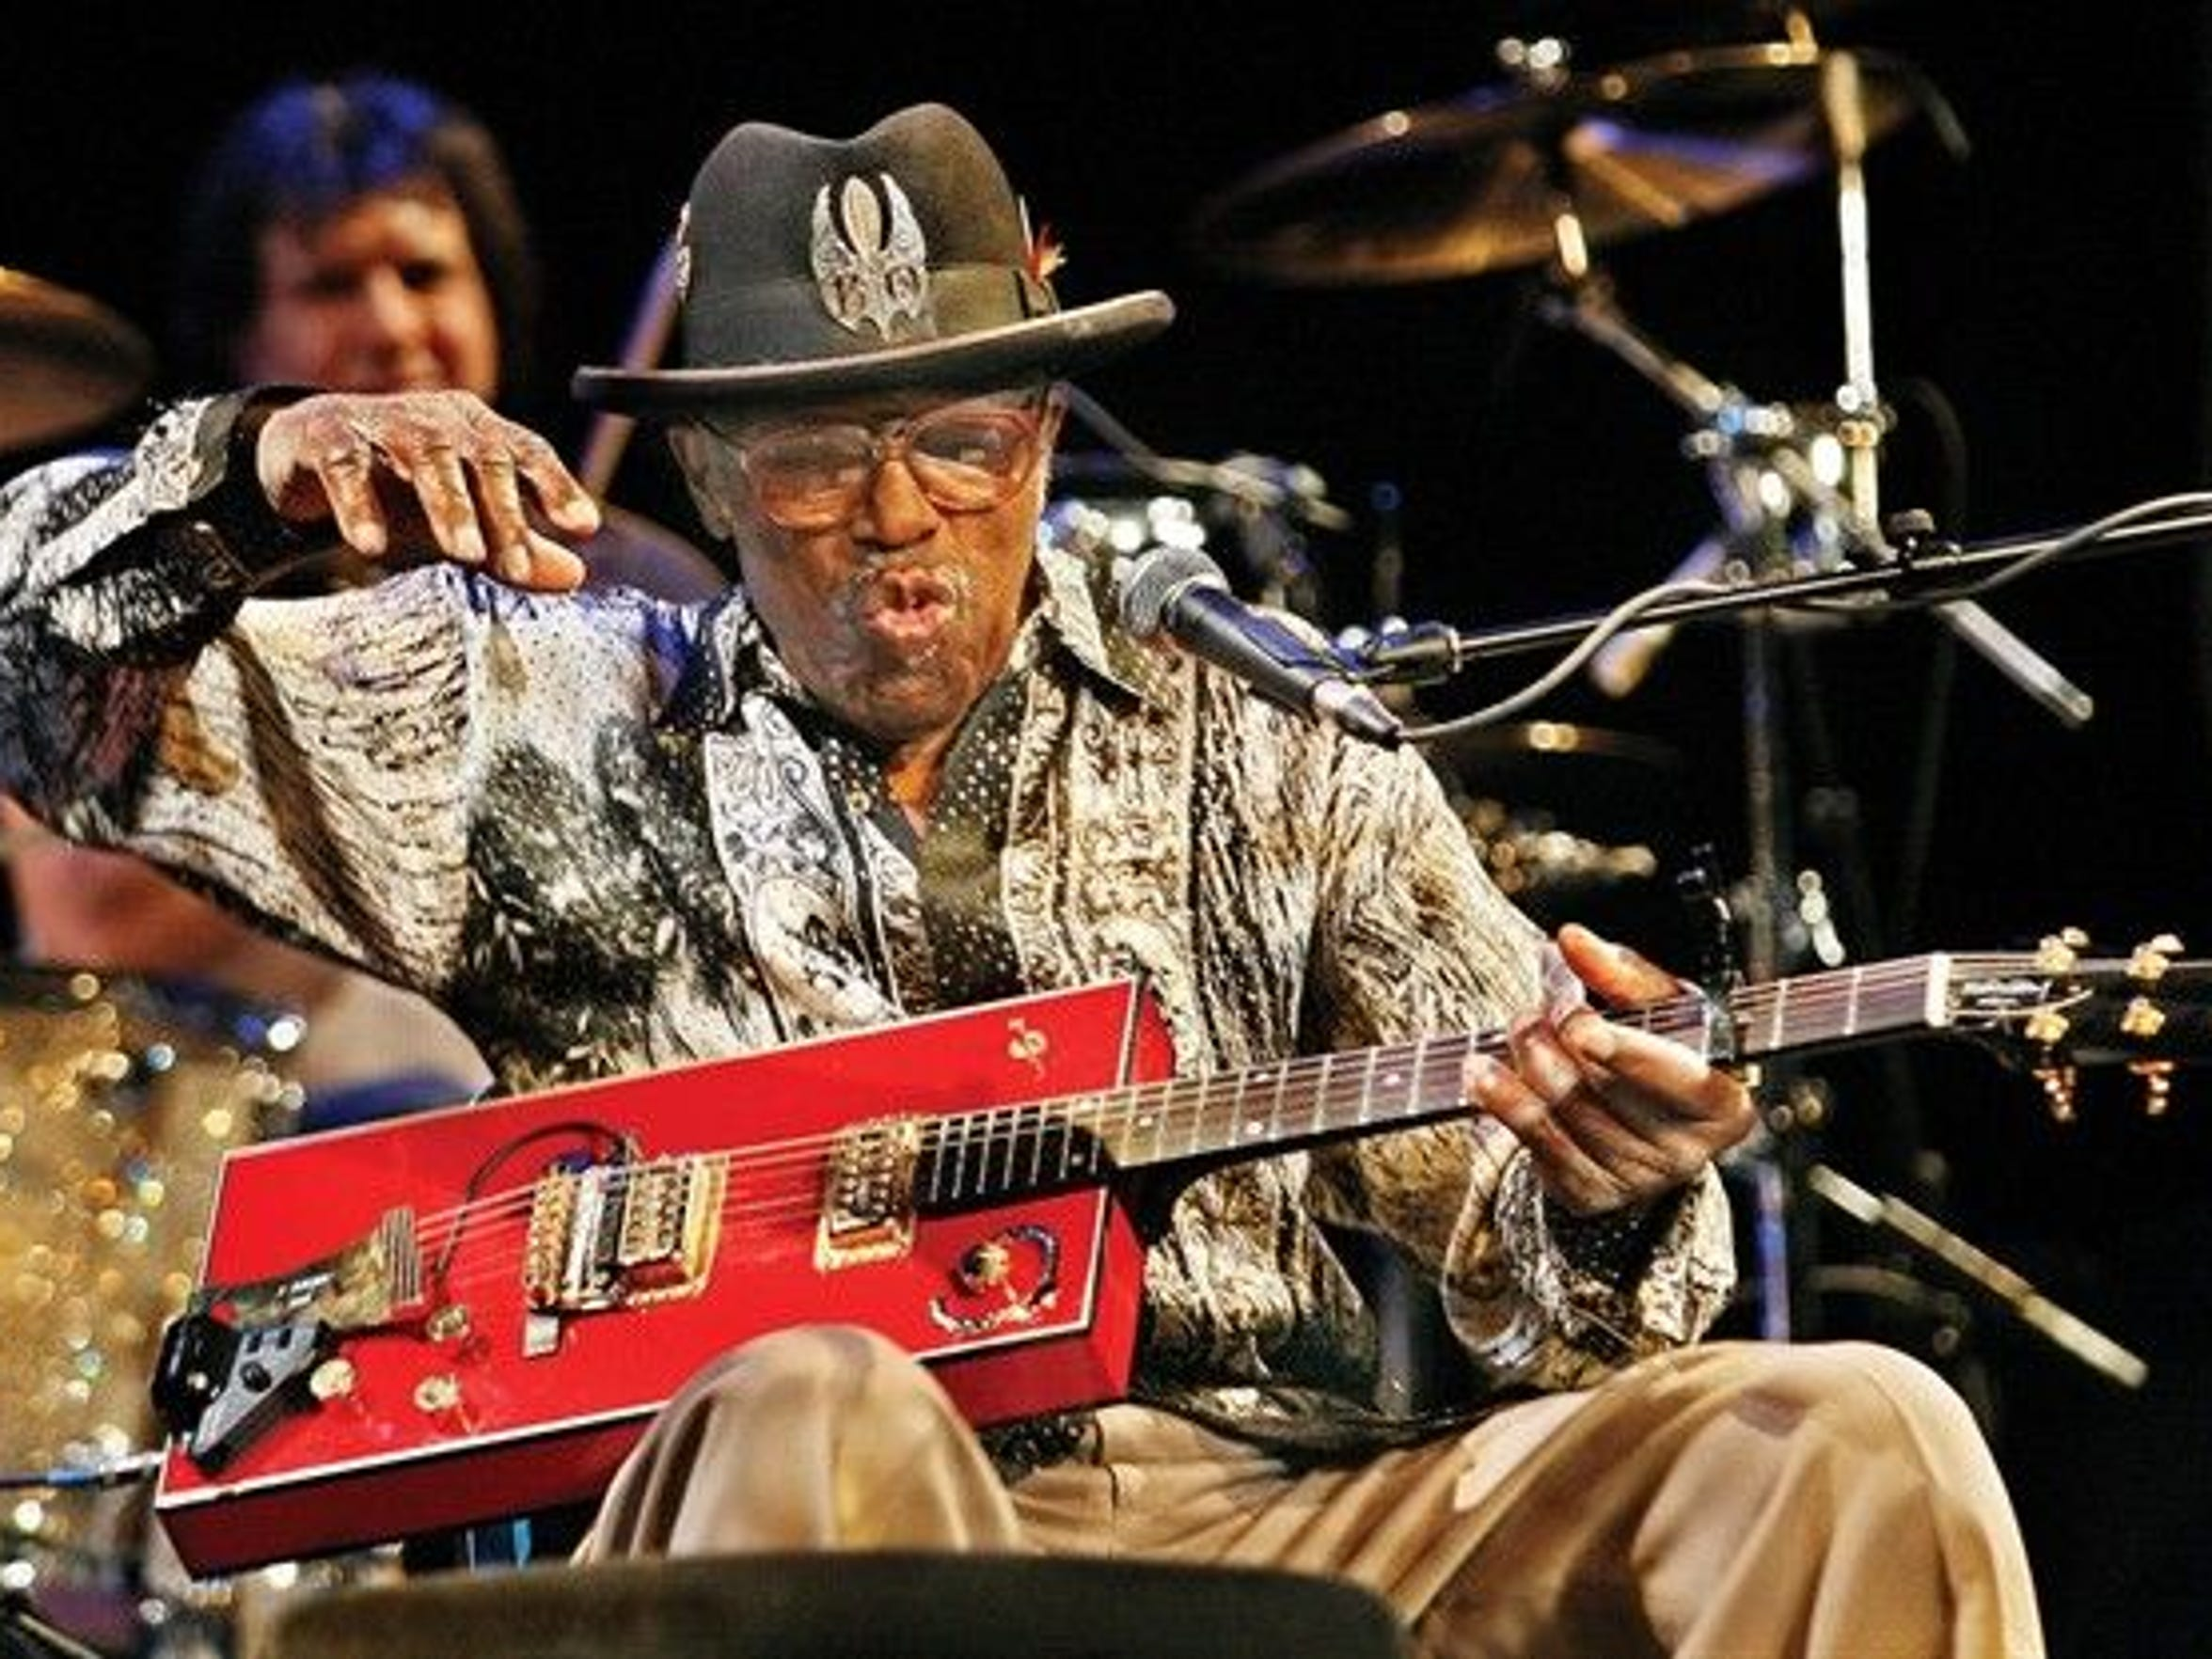 Blues legend Bo Diddley wasn't thrilled to deal with picture-seekers when he played at JazzFest in 2000.